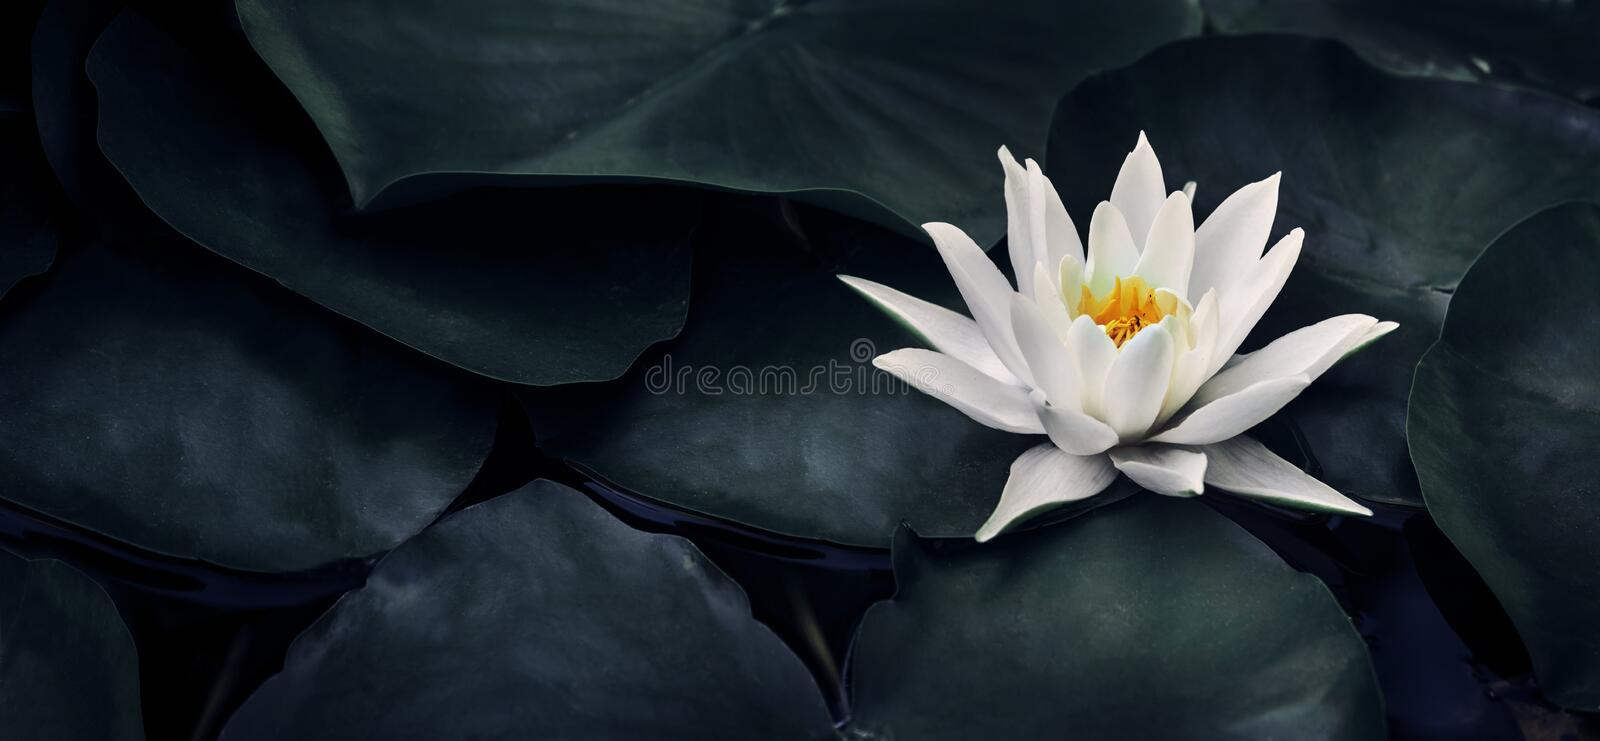 Beautiful white lotus flower closeup. Exotic water lily flower on dark green leaves. Fine art minimal concept nature background stock photo